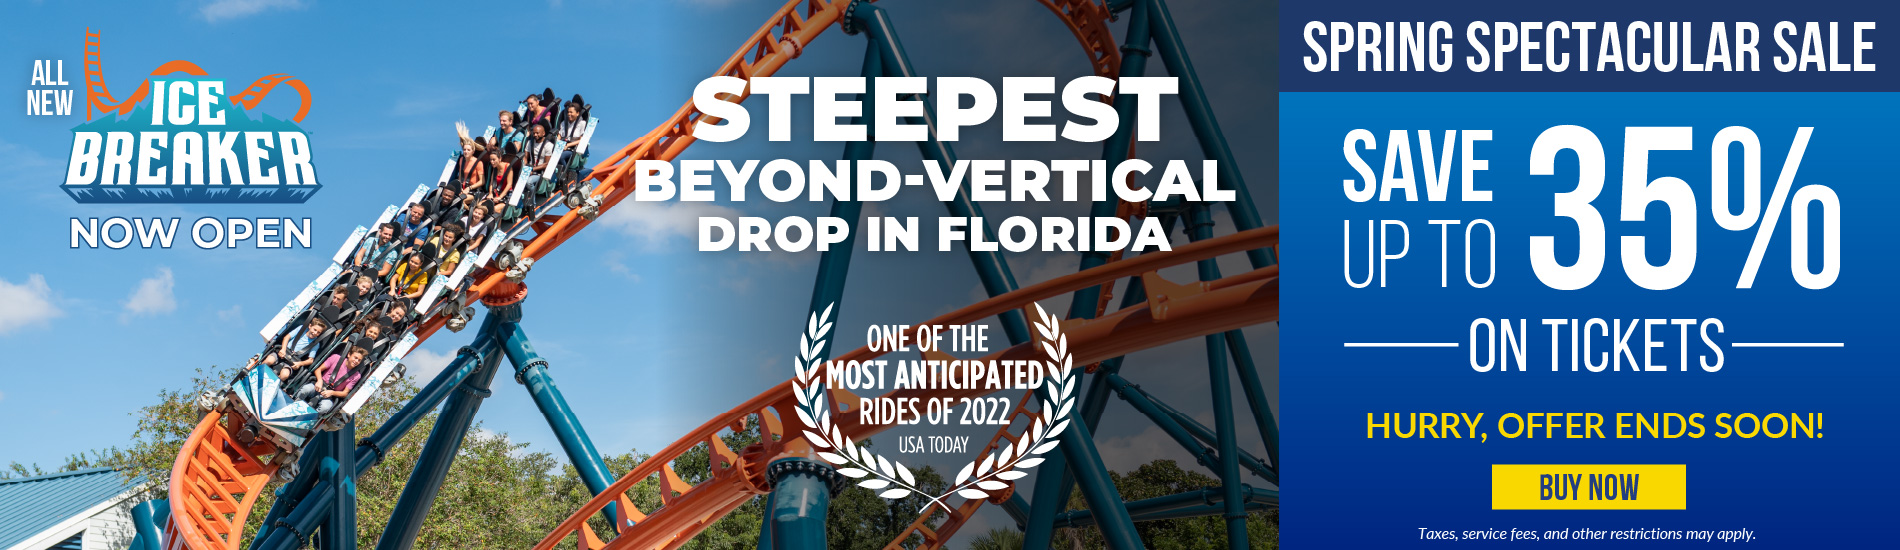 SeaWorld Orlando Spring Spectacular Sale Save up to 35% on Tickets